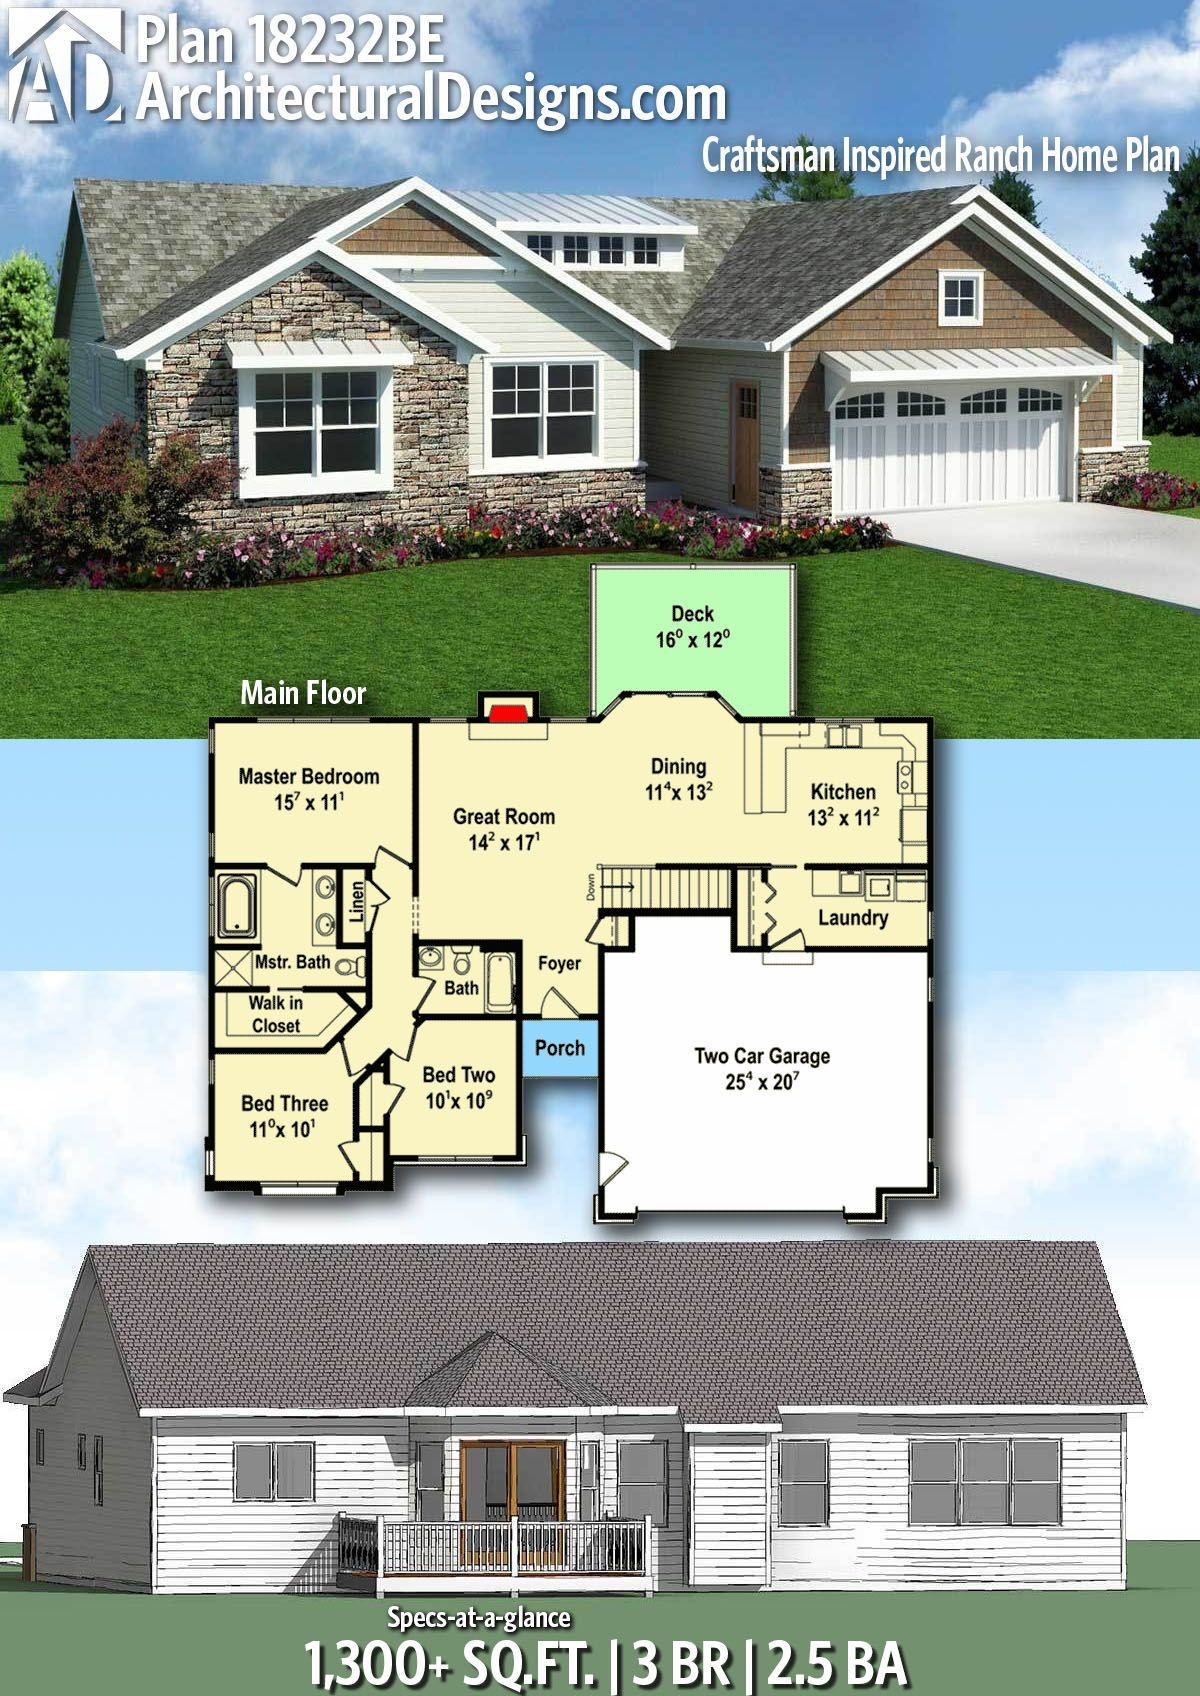 Plan 18232BE: Craftsman Inspired Ranch Home Plan in 2019 ... on 1600 sq ft ranch house plans, 3000 sq ft ranch house plans, 2200 sq ft ranch house plans, 1800 sq ft ranch house plans, 800 sq ft ranch house plans, 2000 sq ft ranch house plans, 1200 sq ft ranch house plans, 1700 sq ft ranch house plans, 1000 sq ft ranch house plans, 700 sq ft ranch house plans, 3500 sq ft ranch house plans, 1500 sq ft ranch house plans, 1400 sq ft ranch house plans, 5000 sq ft ranch house plans, 2400 sq ft ranch house plans, 2300 sq ft ranch house plans, 1100 sq ft ranch house plans, 1450 sq ft ranch house plans, 3200 sq ft ranch house plans, 4000 sq ft ranch house plans,